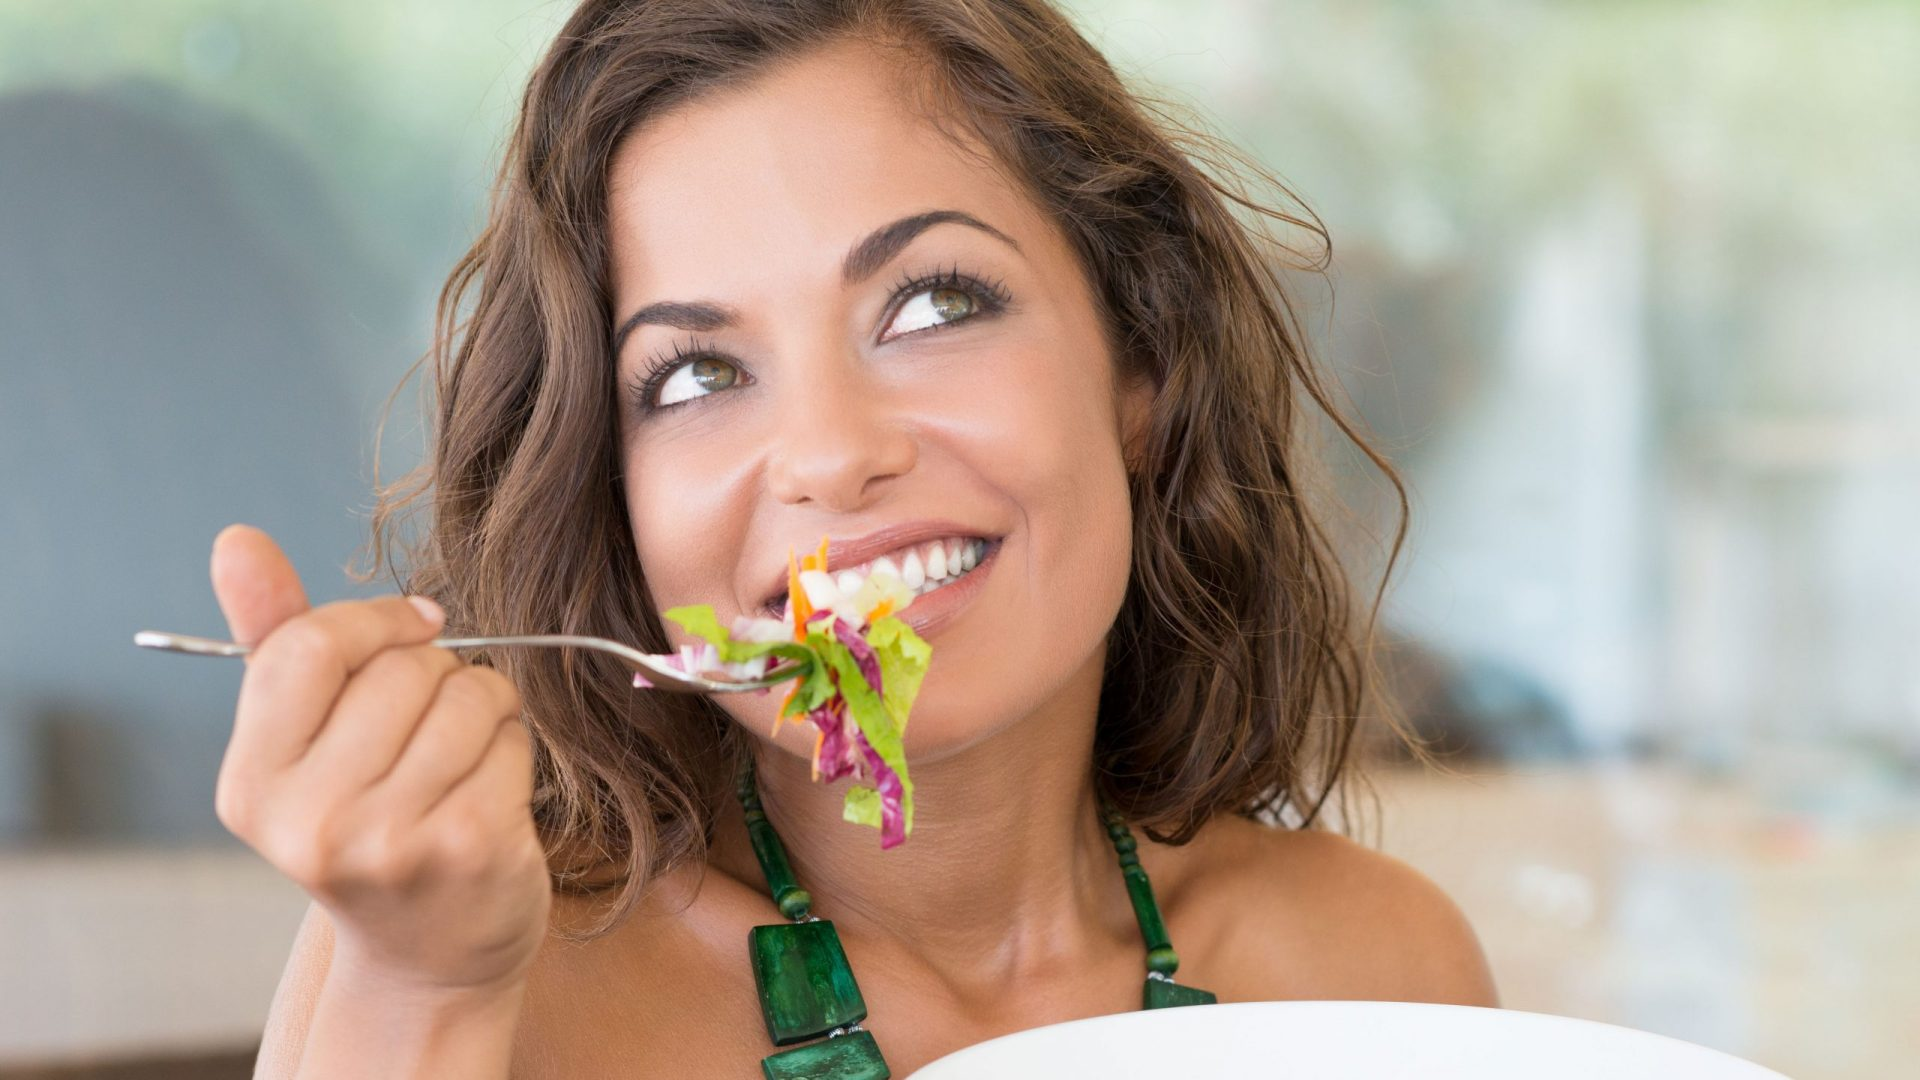 35534884 - portrait of young happy woman eating salad at cafeteria